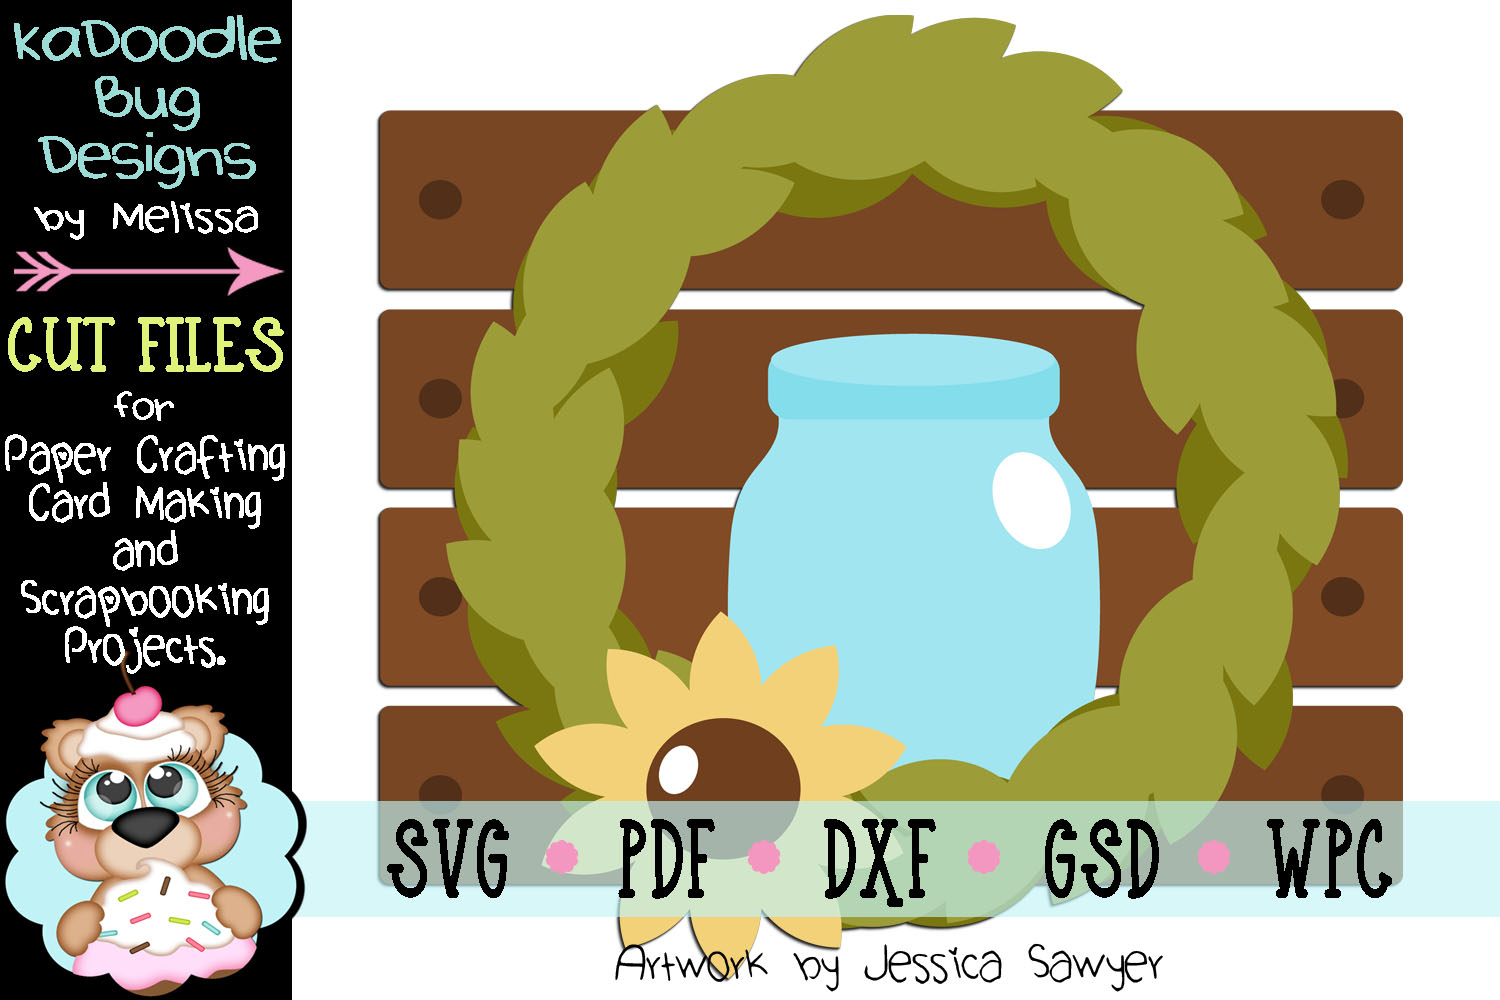 Country Living Decor Cut File - SVG PDF DXF GSD WPC example image 1